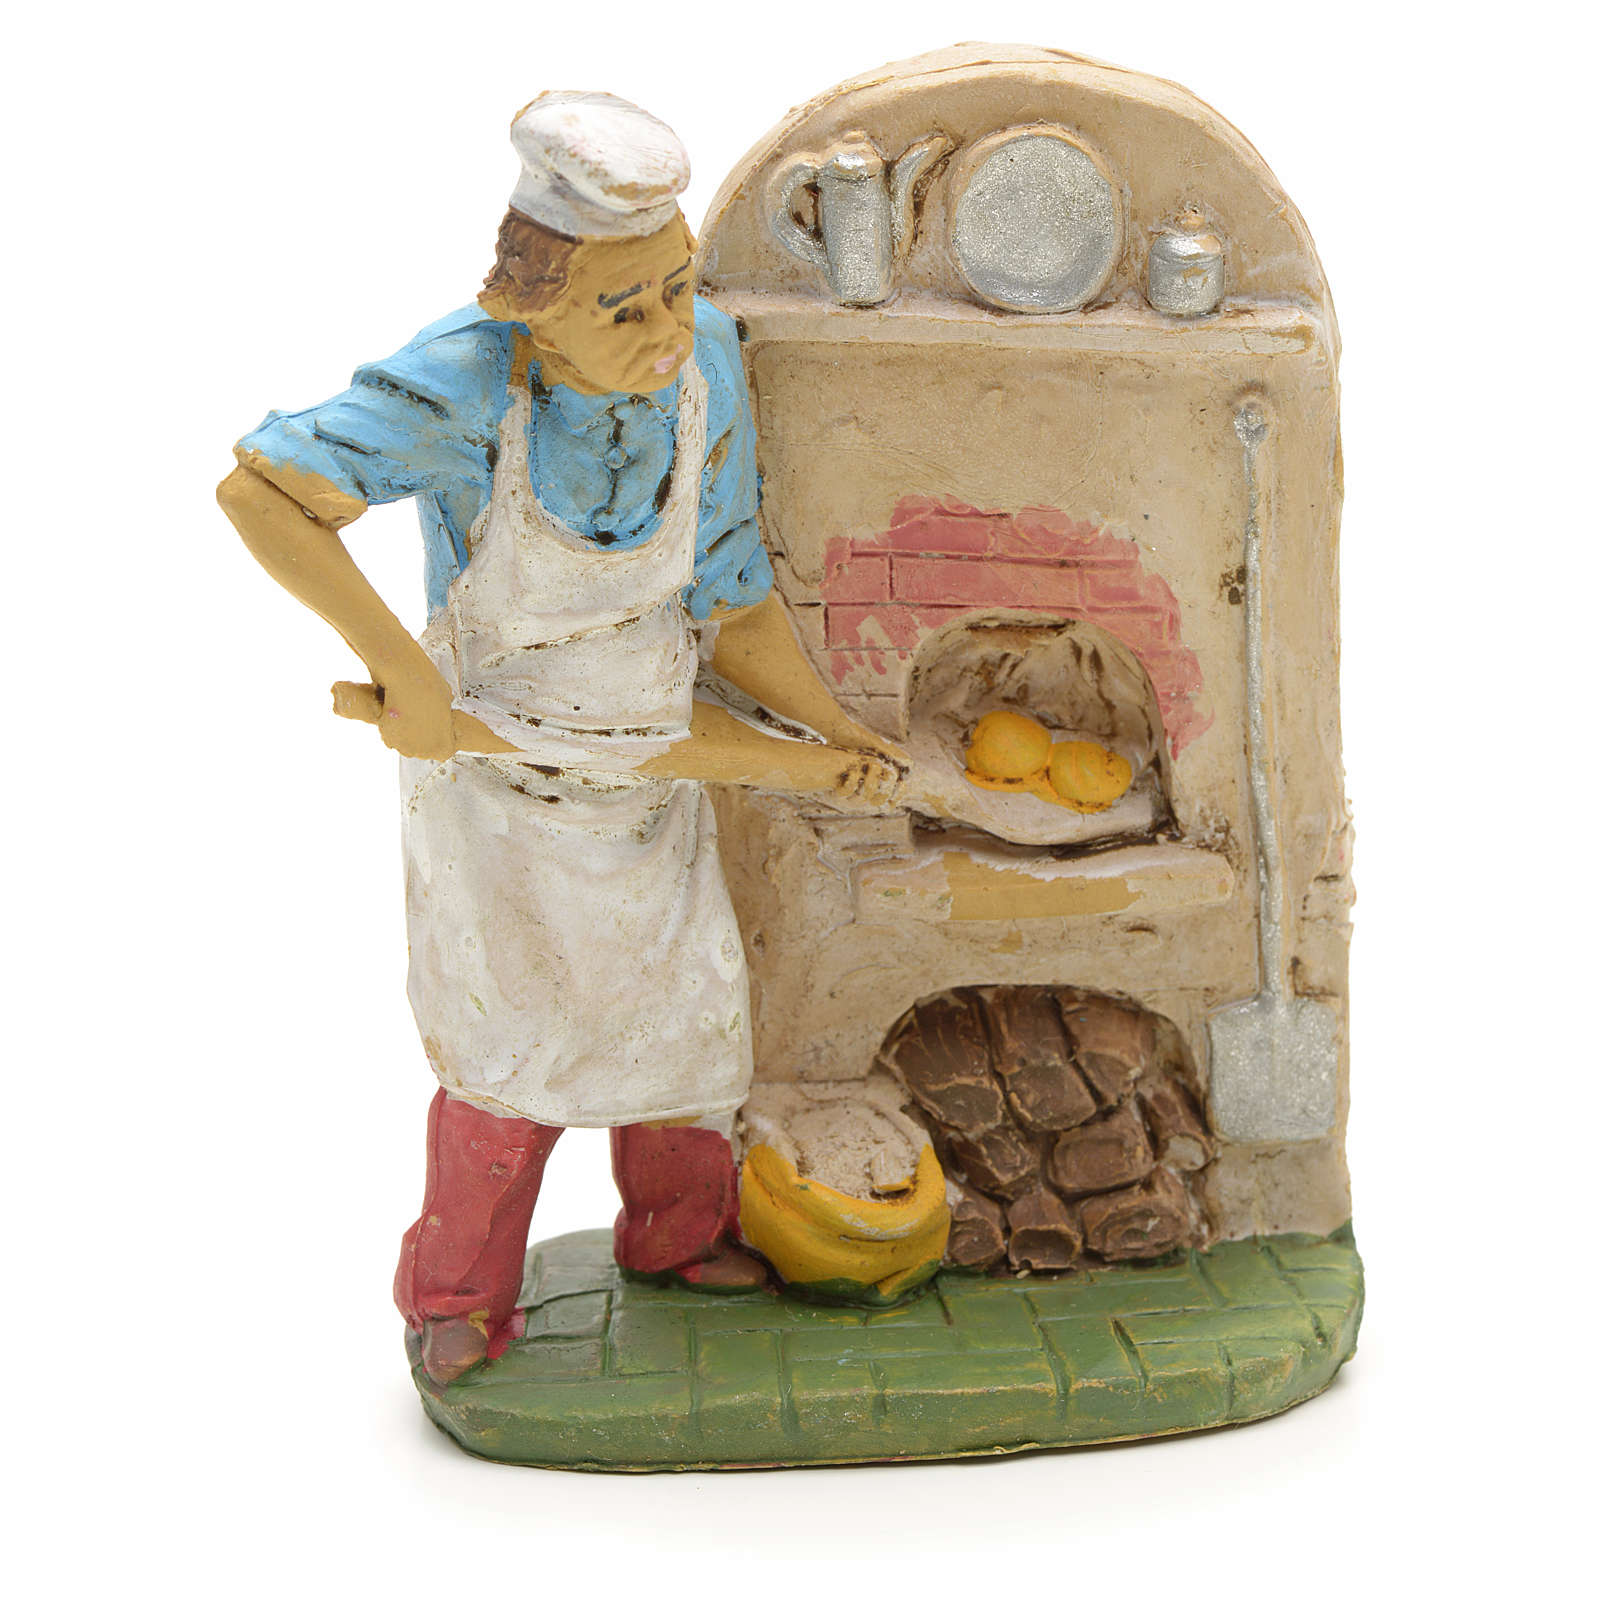 Nativity set accessory, Baker with oven figurine 3